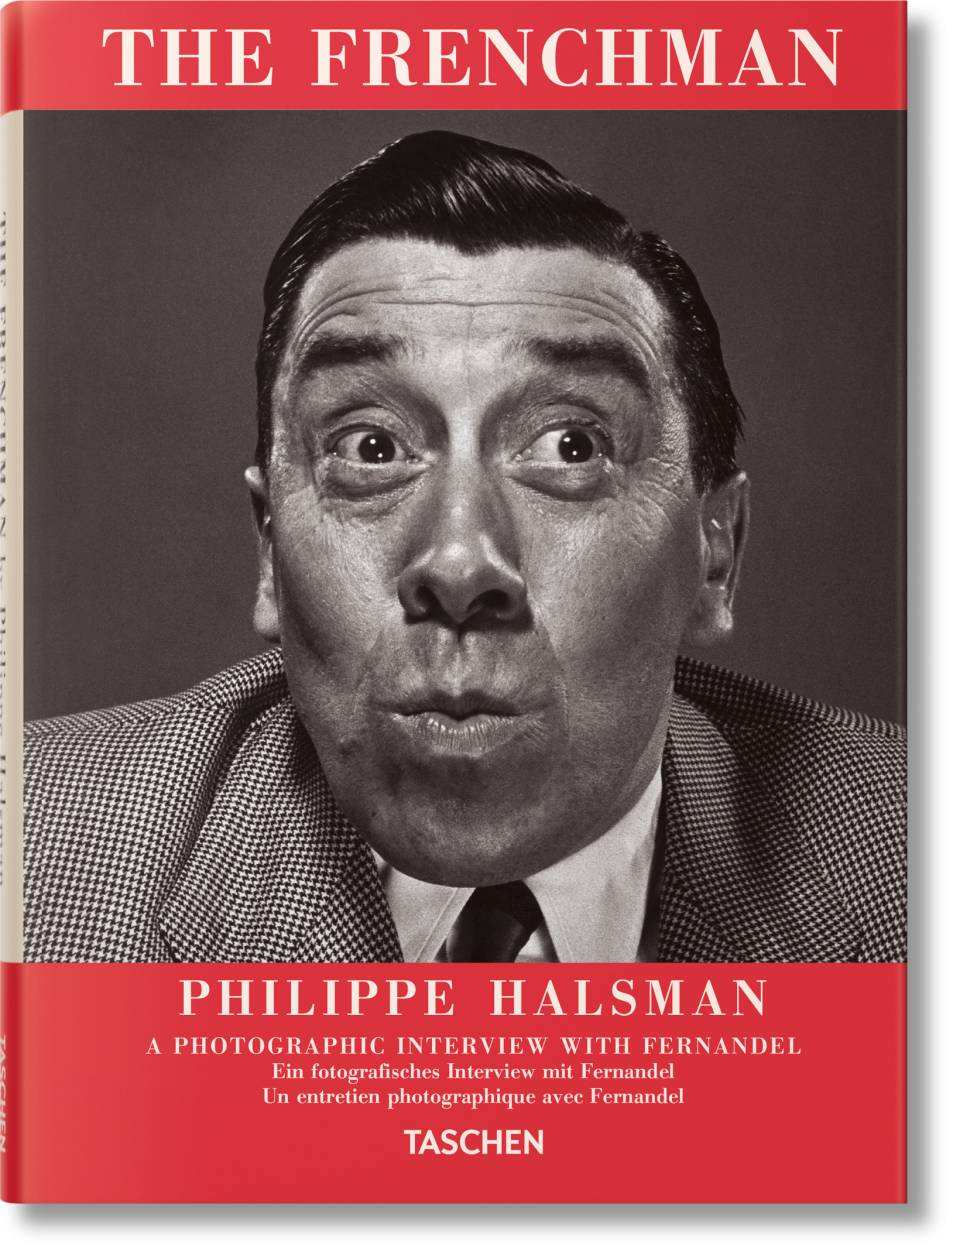 Philippe Halsman. The Frenchman - image 1